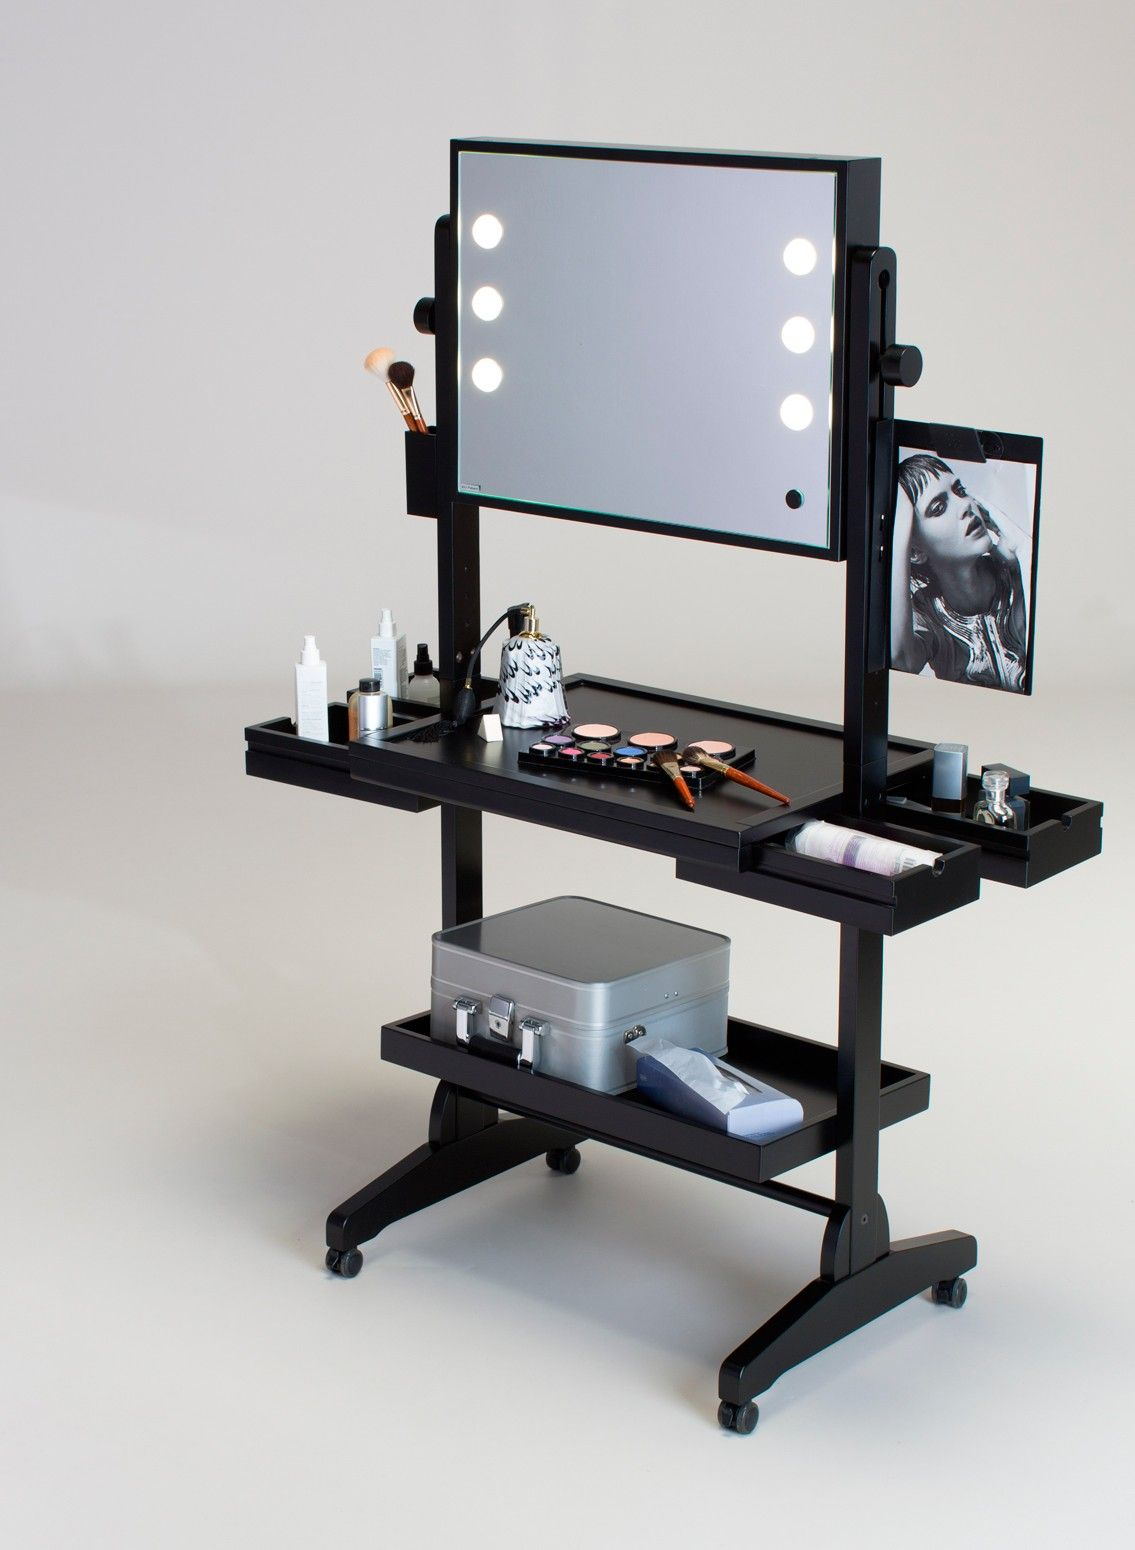 L400 WHEELED LIGHTED VANITY TABLE FULL MIRROR AND LATERAL DRAWERS  Wheeled Make  up Stations. L400 WHEELED LIGHTED VANITY TABLE FULL MIRROR AND LATERAL DRAWERS